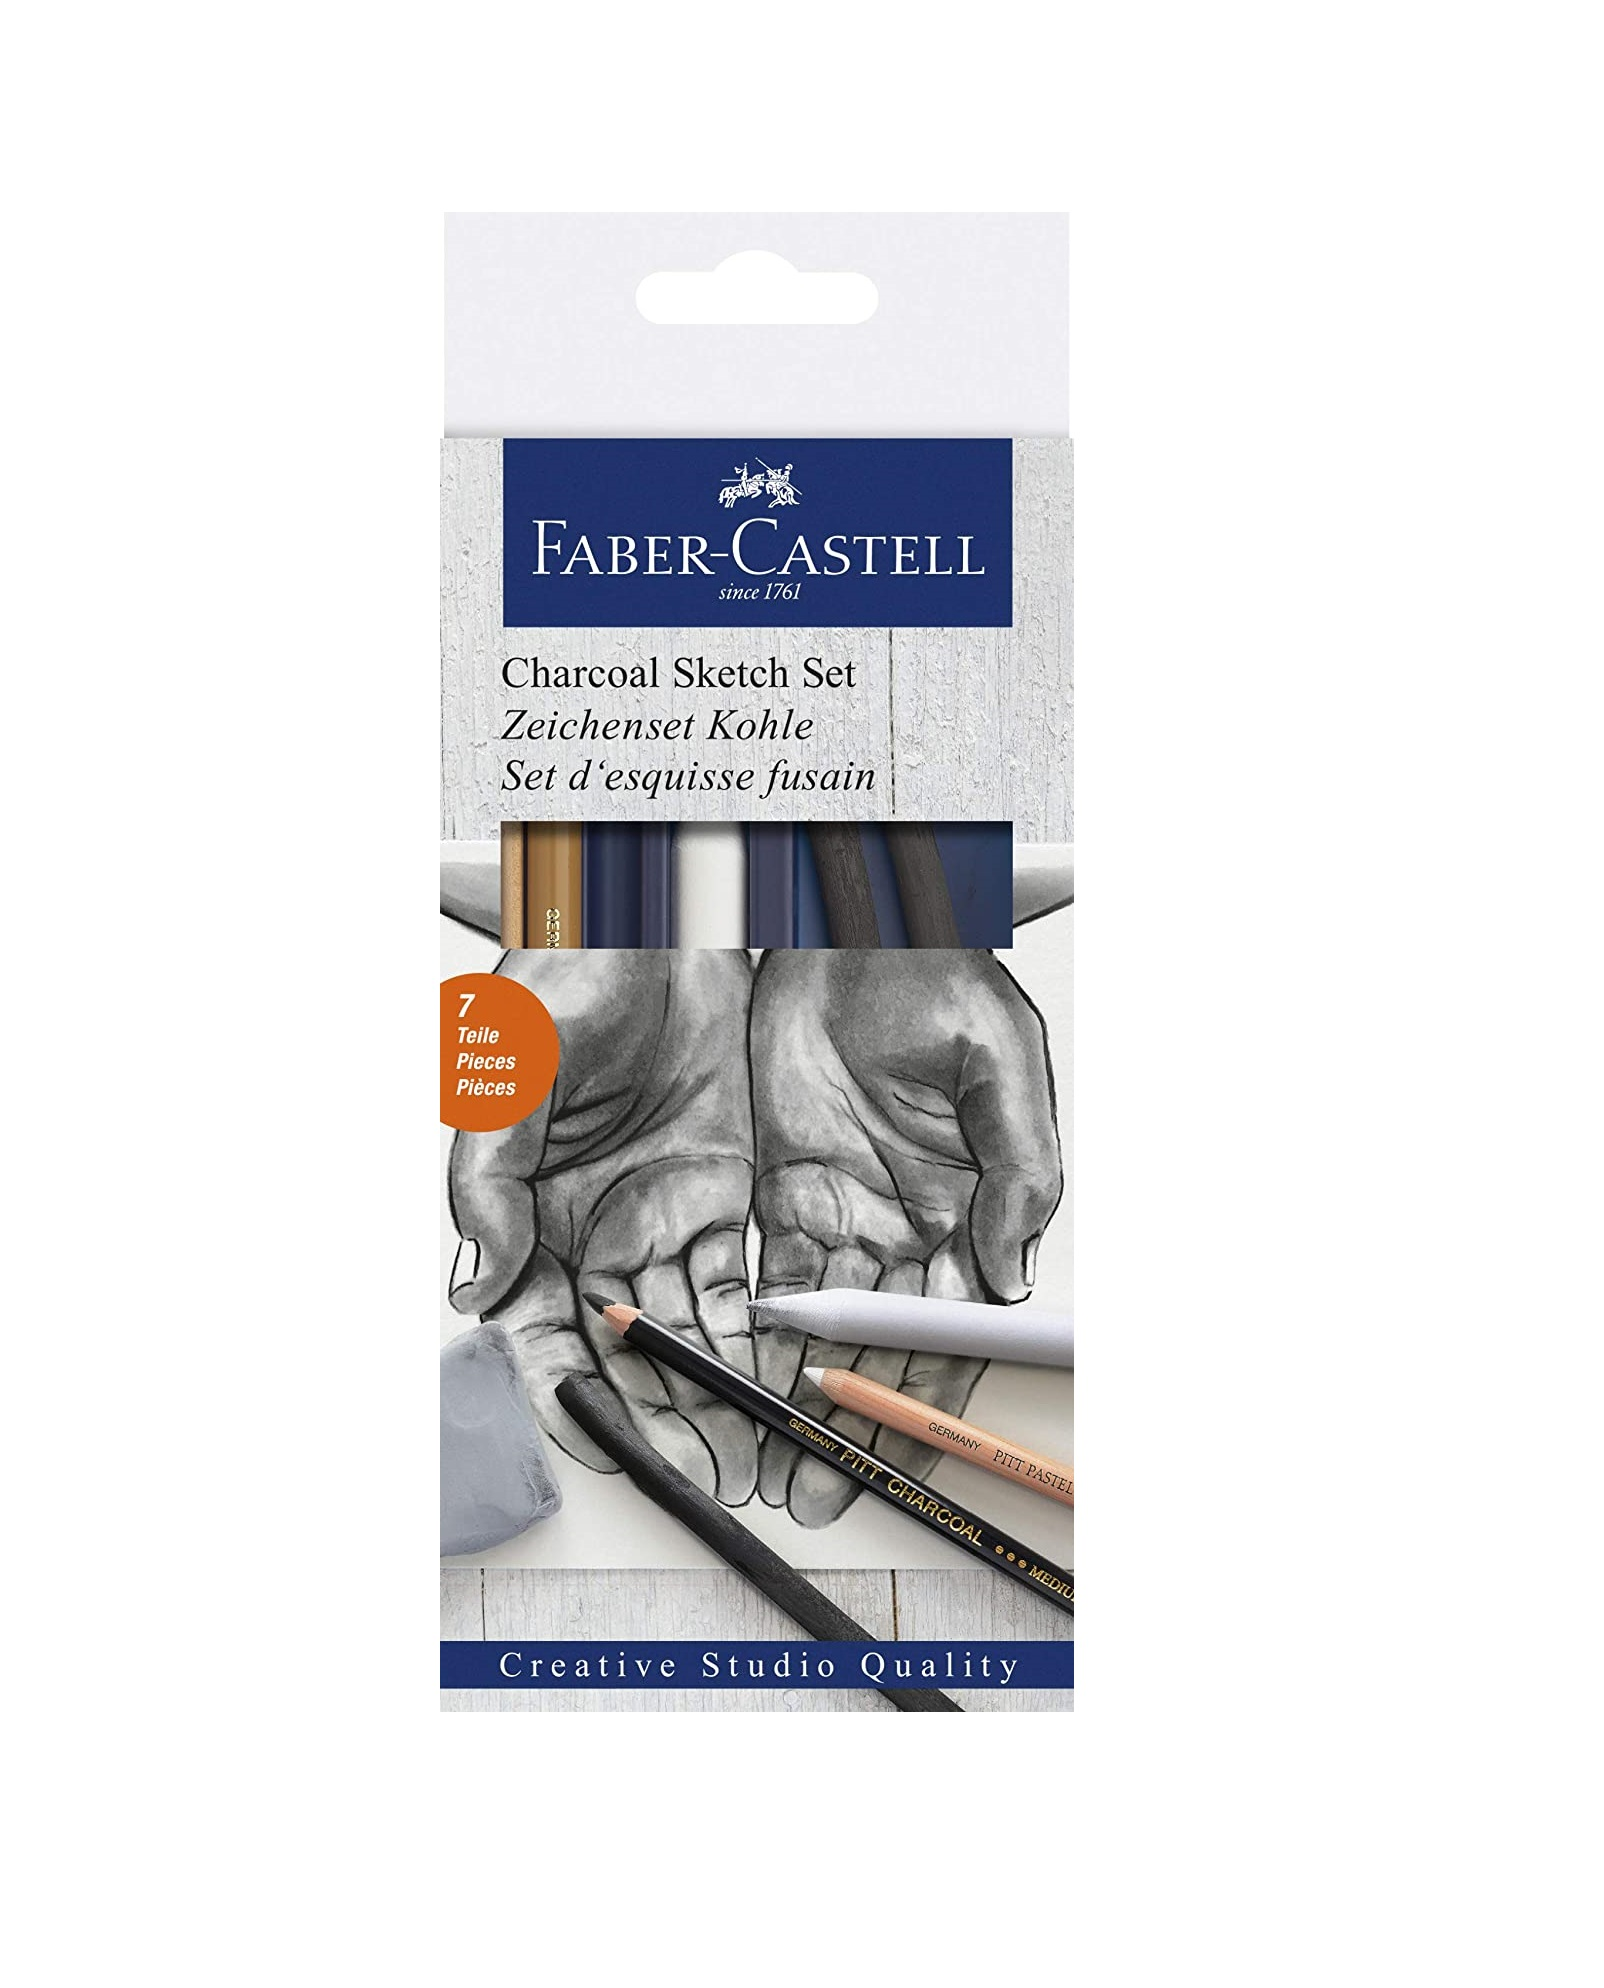 Faber-Castell Charcoal Drawing Set - Pack of 6